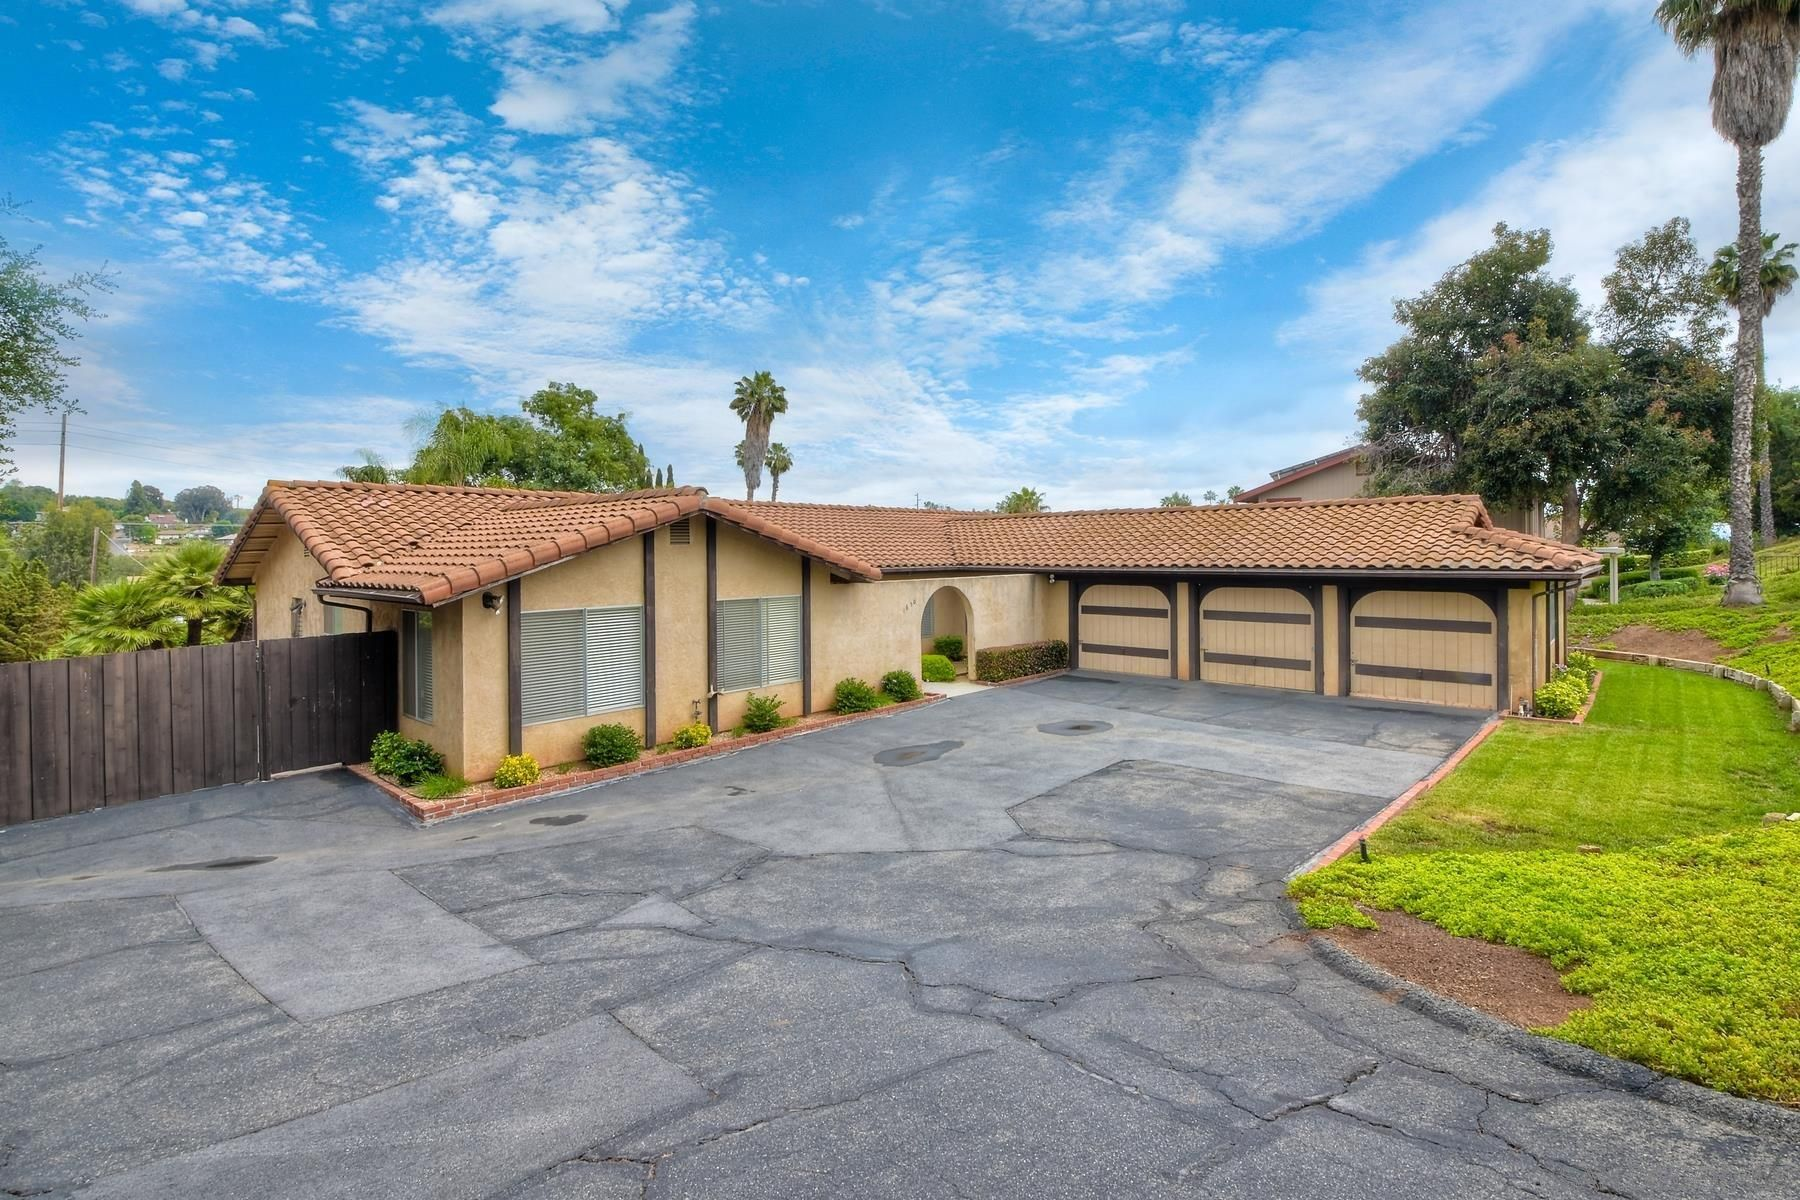 Main Photo: House for sale : 4 bedrooms : 1650 Citrus Hills Ln in Escondido